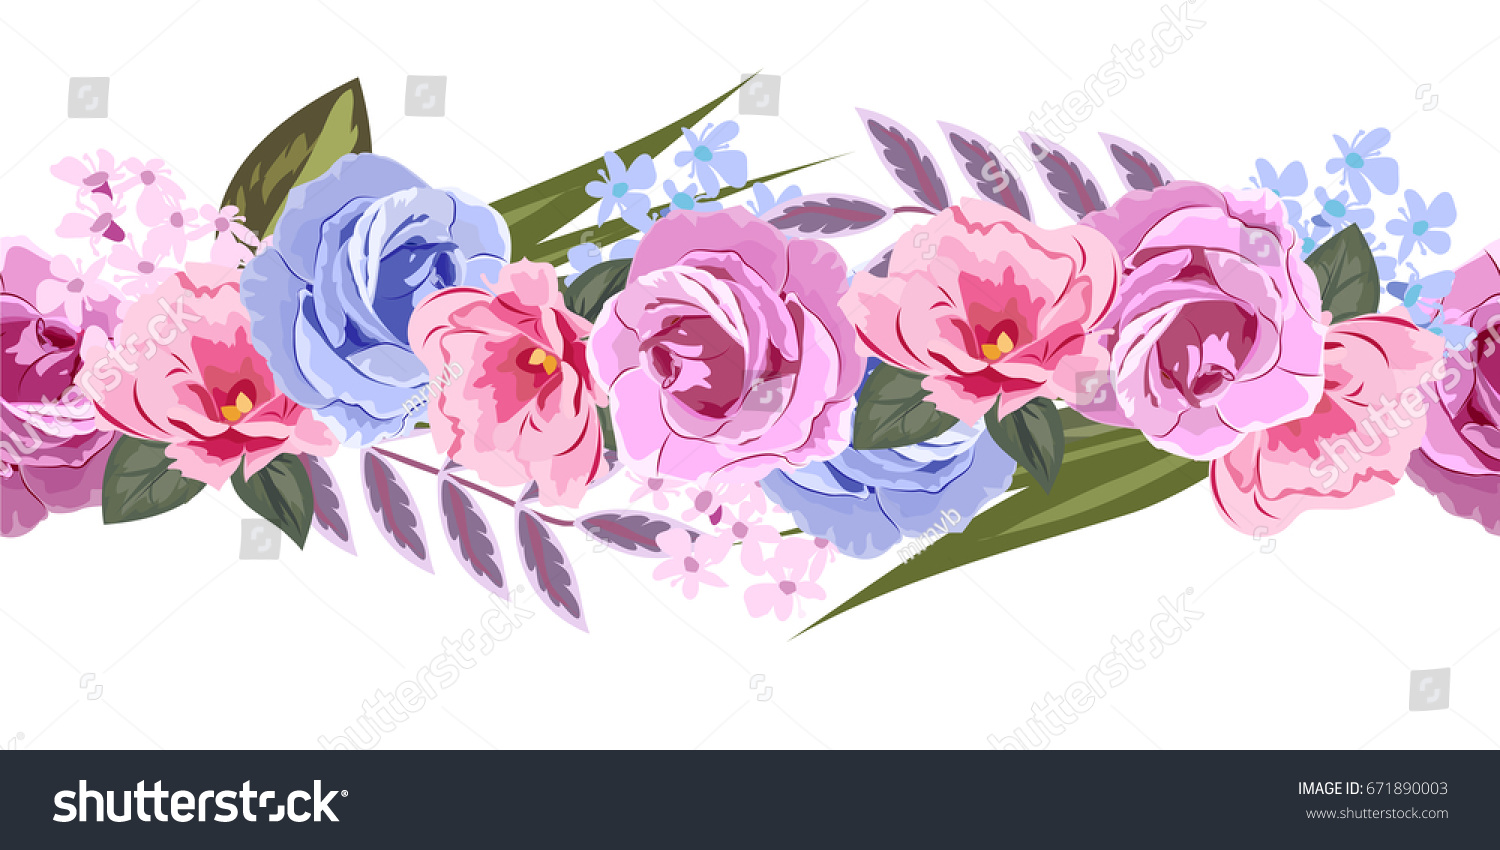 Seamless floral border cute pink flowers stock illustration seamless floral border with cute pink flowers and beautiful roses hand drawn pattern on mightylinksfo